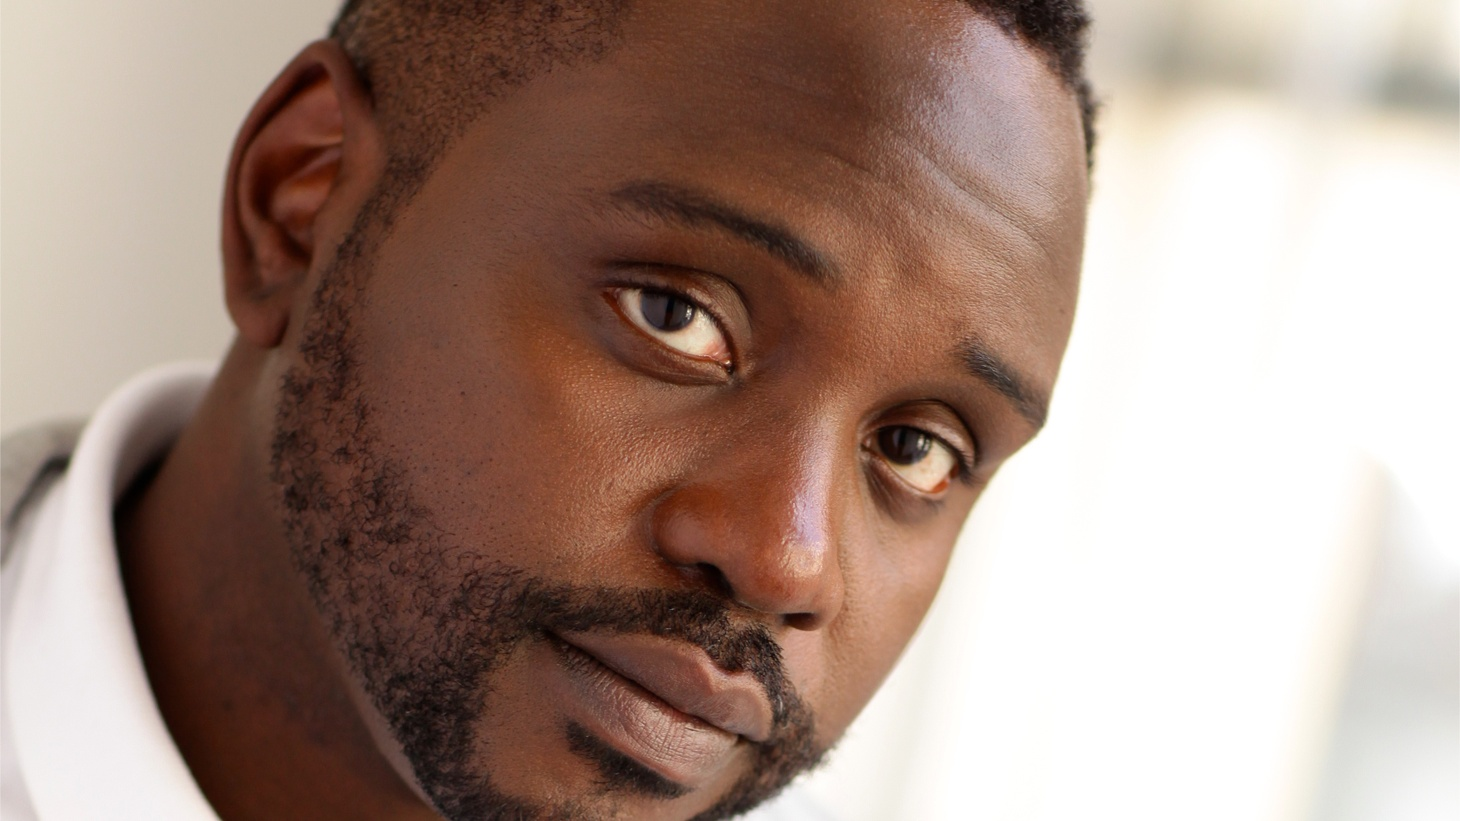 """Brian Tyree Henry plays the rapper Paper Boi on FX's """"Atlanta."""" He got an Emmy nomination for his appearance on NBC's """"This Is Us."""" He was also part of the original cast of """"Book of Mormon"""" on Broadway.      Brian Tyree Henry is one of the stars of the critically acclaimed  show """"Atlanta."""" (Photo by Deborah Lopez)"""